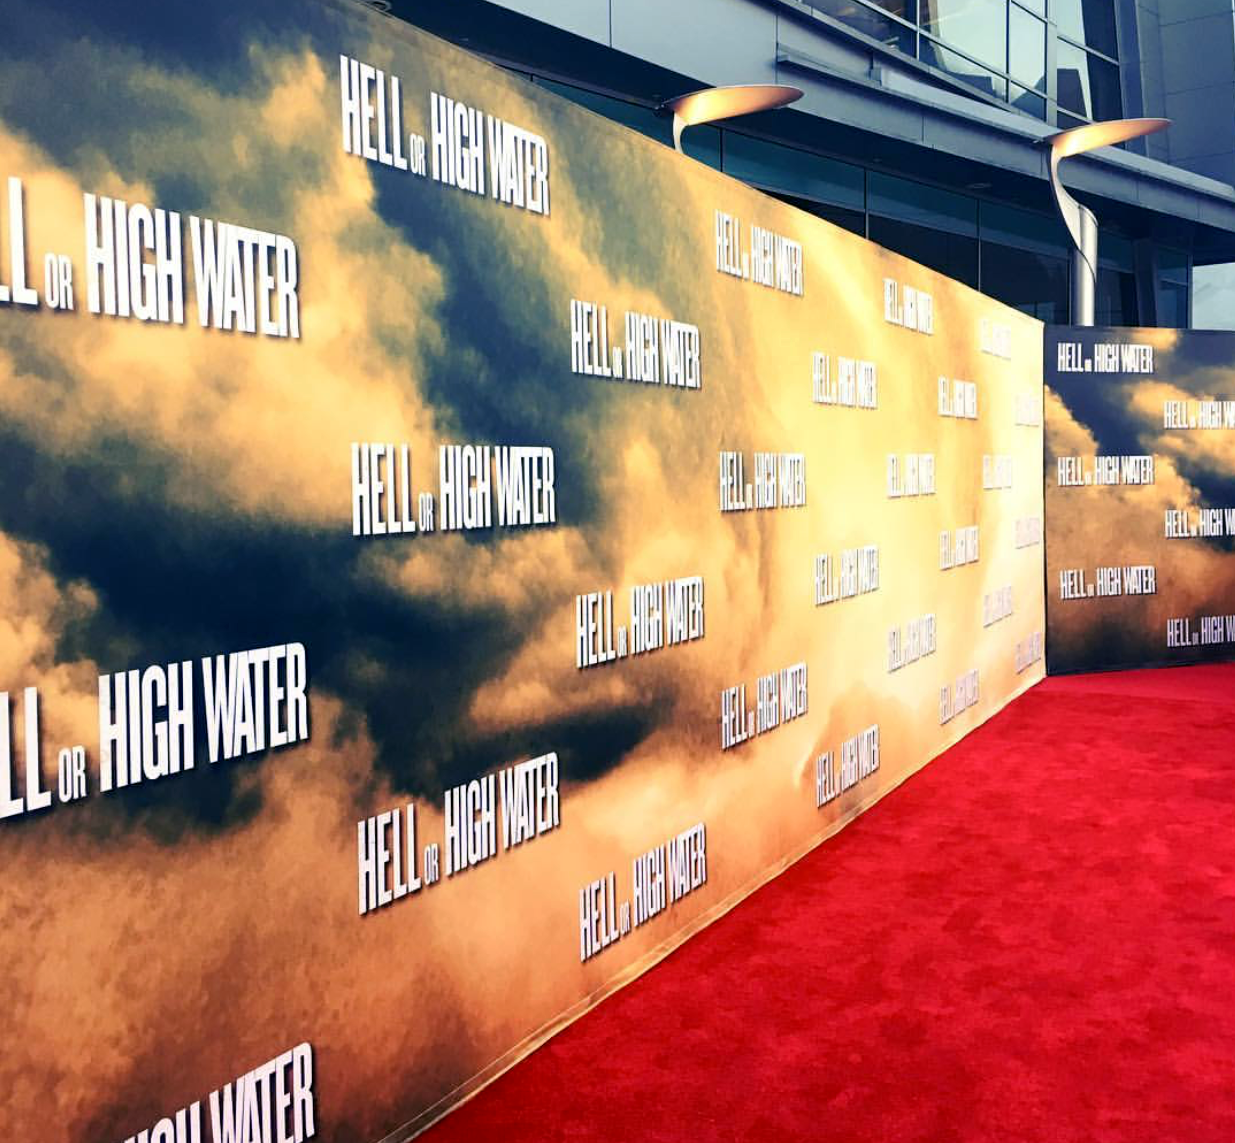 Hell or High Water, red carpet